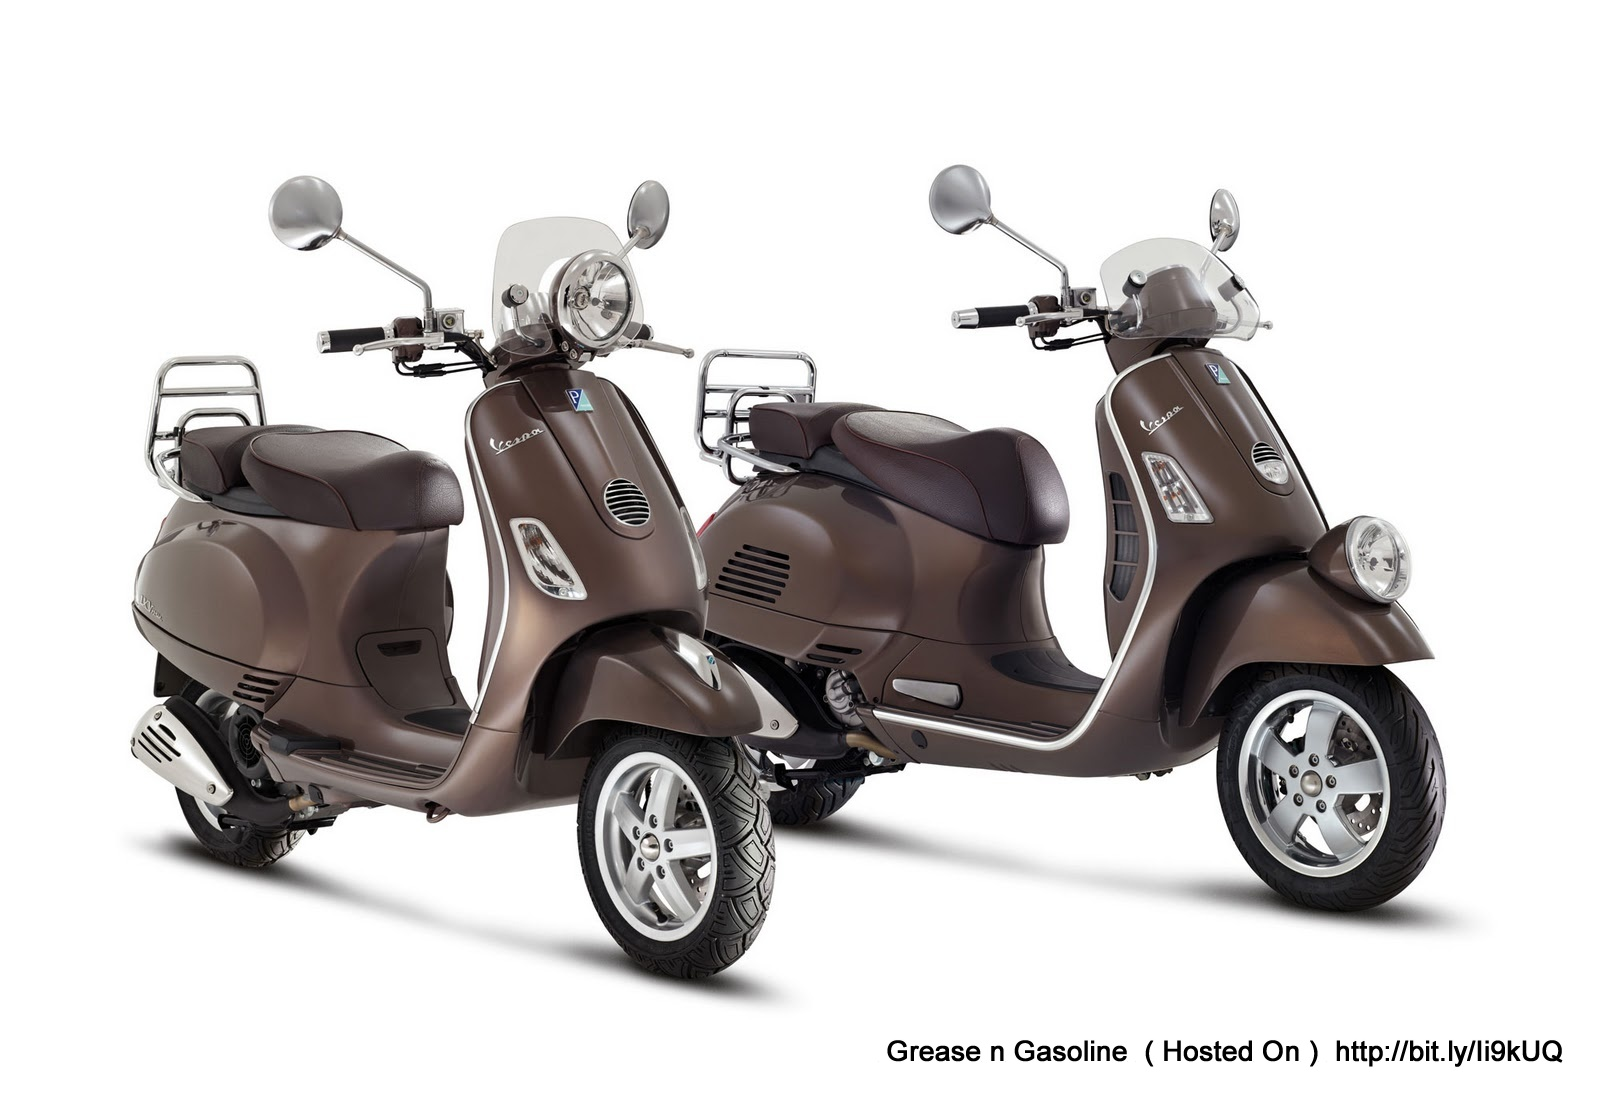 piaggio vespa lx 125 india overview grease n gasoline. Black Bedroom Furniture Sets. Home Design Ideas